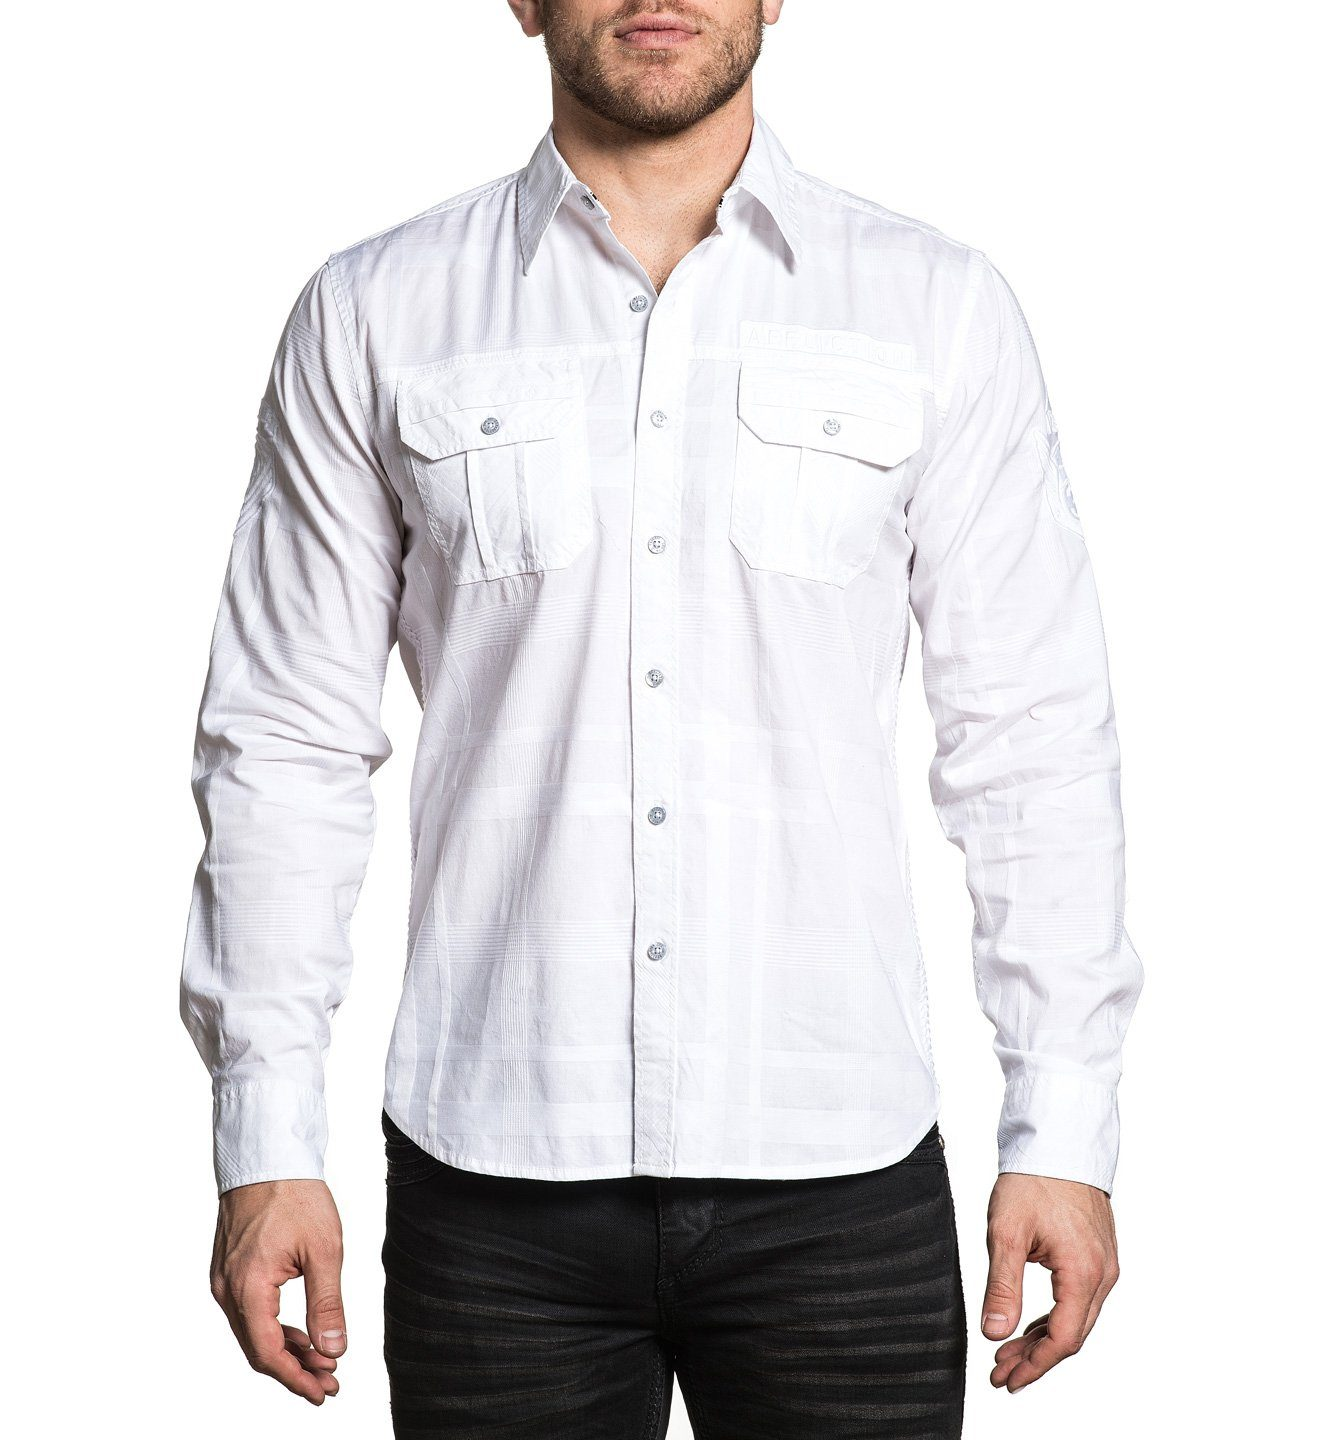 Mens Button Down Tops - Commend